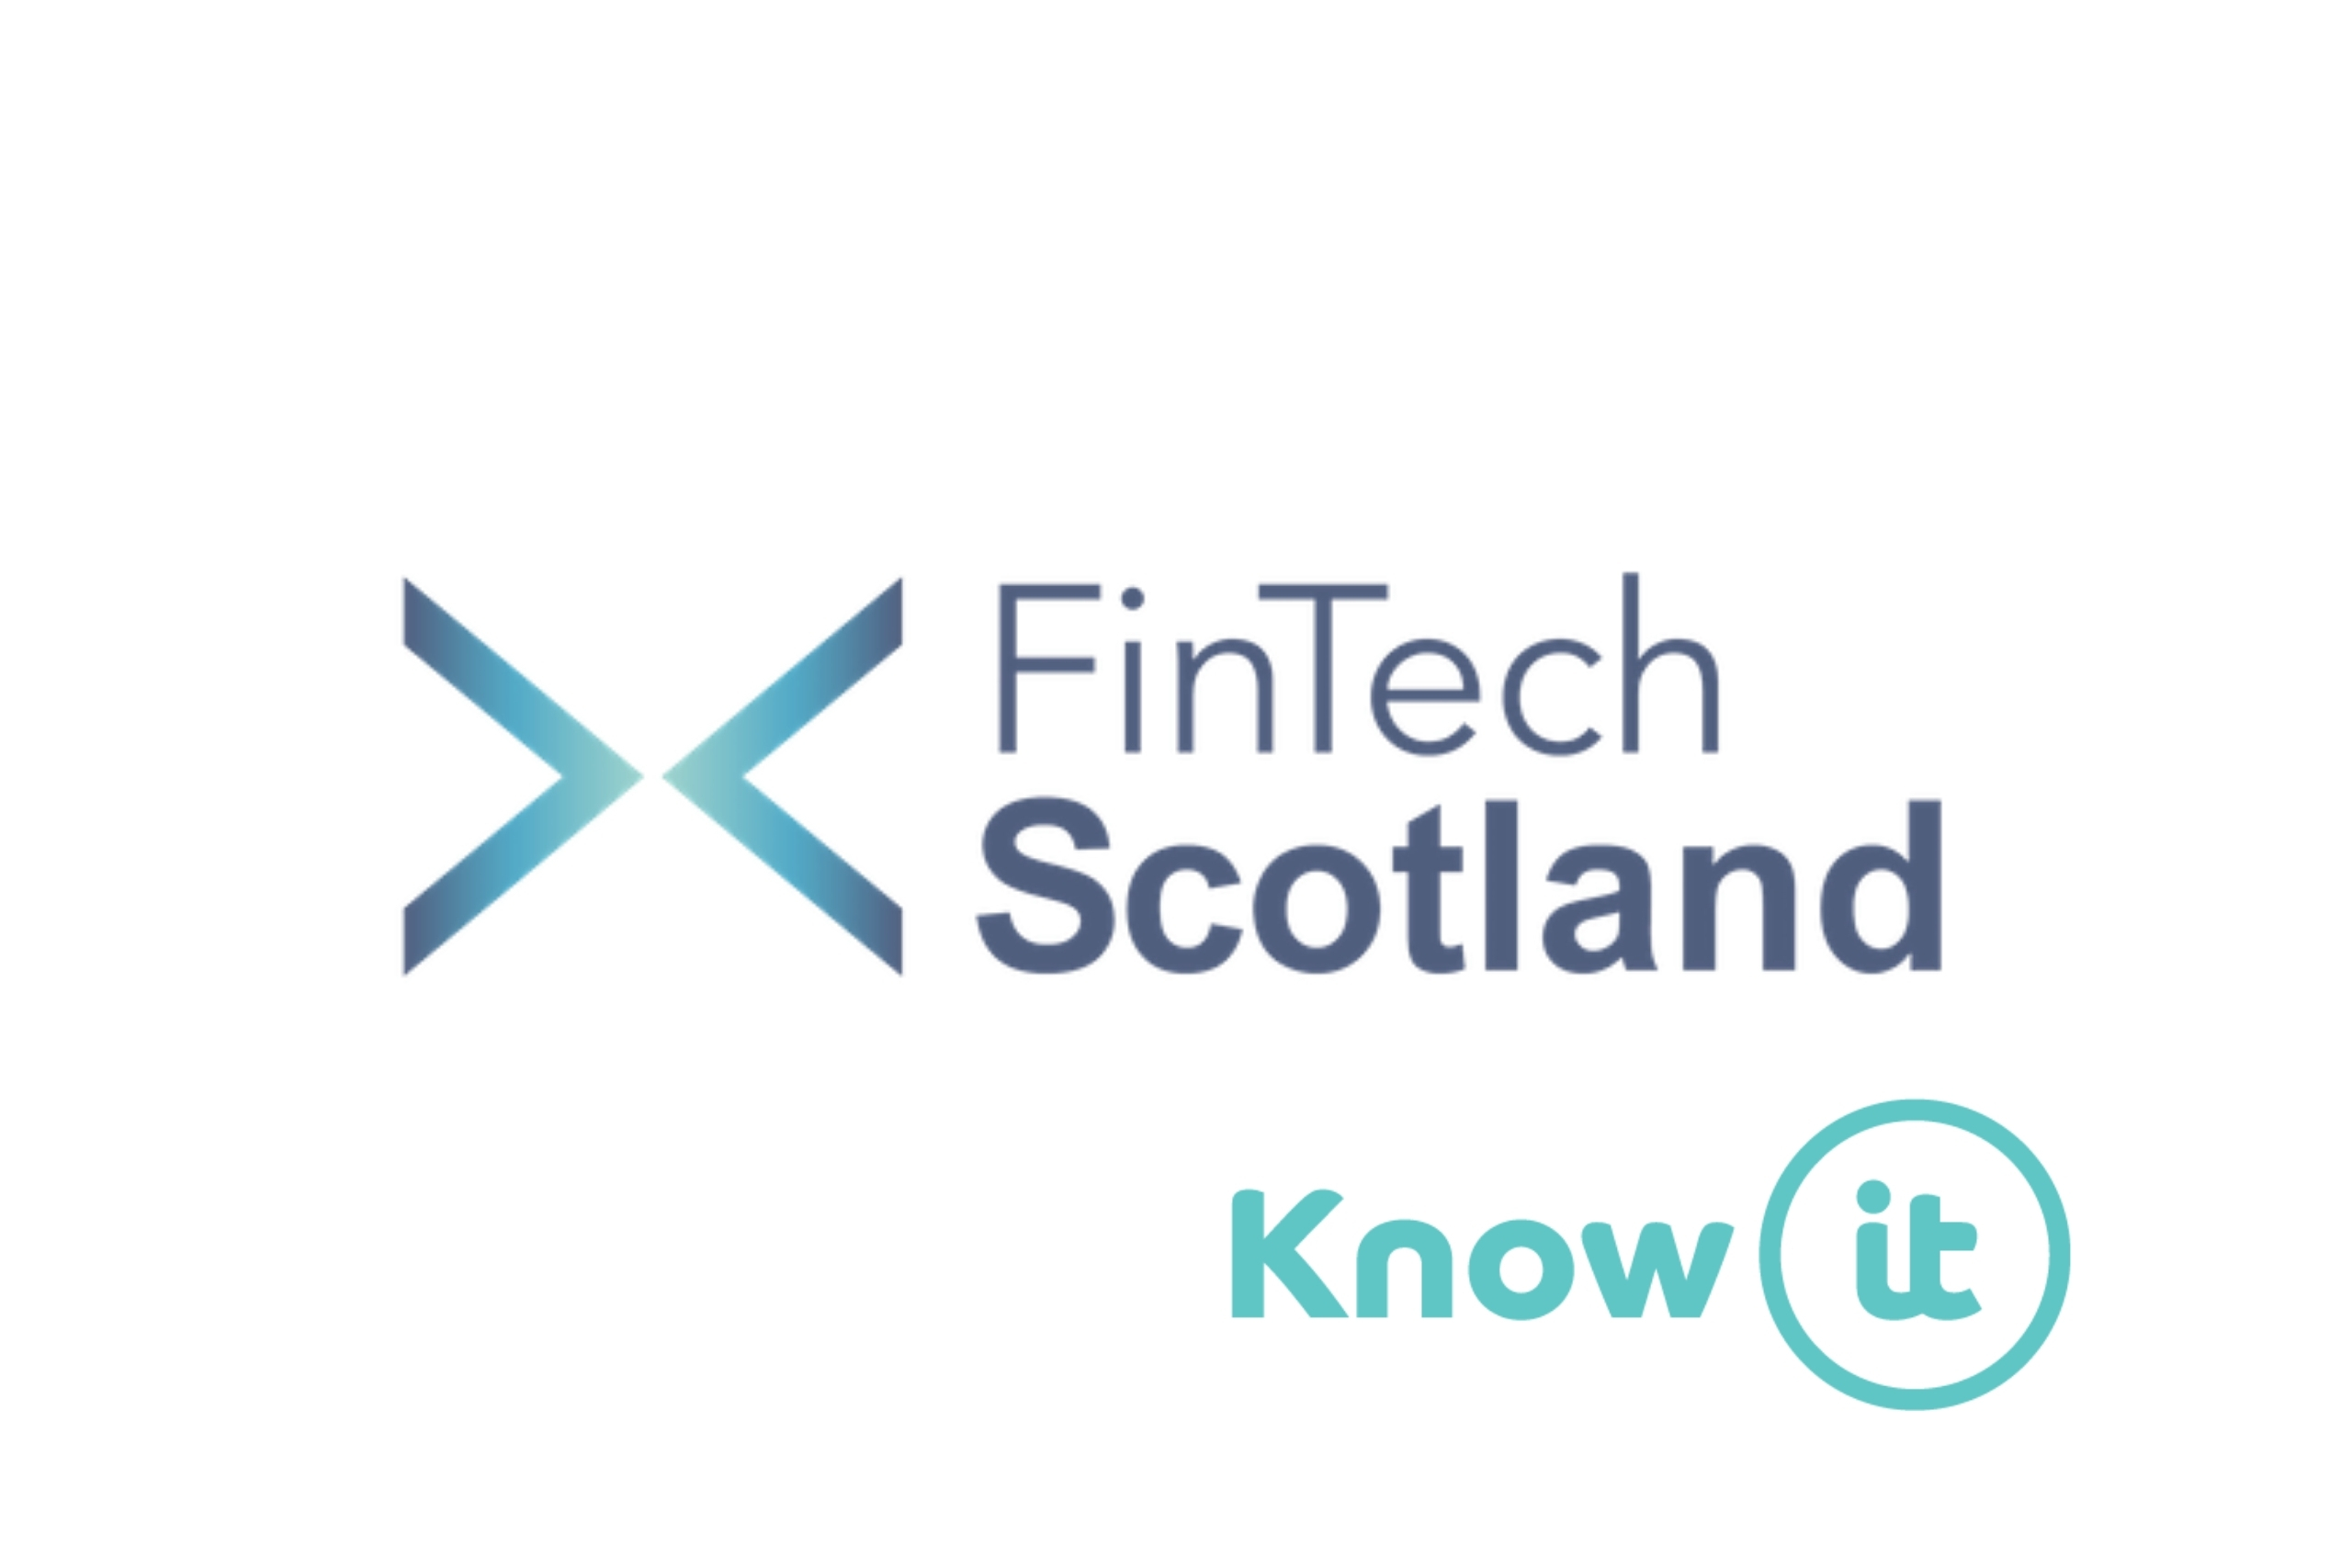 Image with Know-it logo and fintech scotland logo